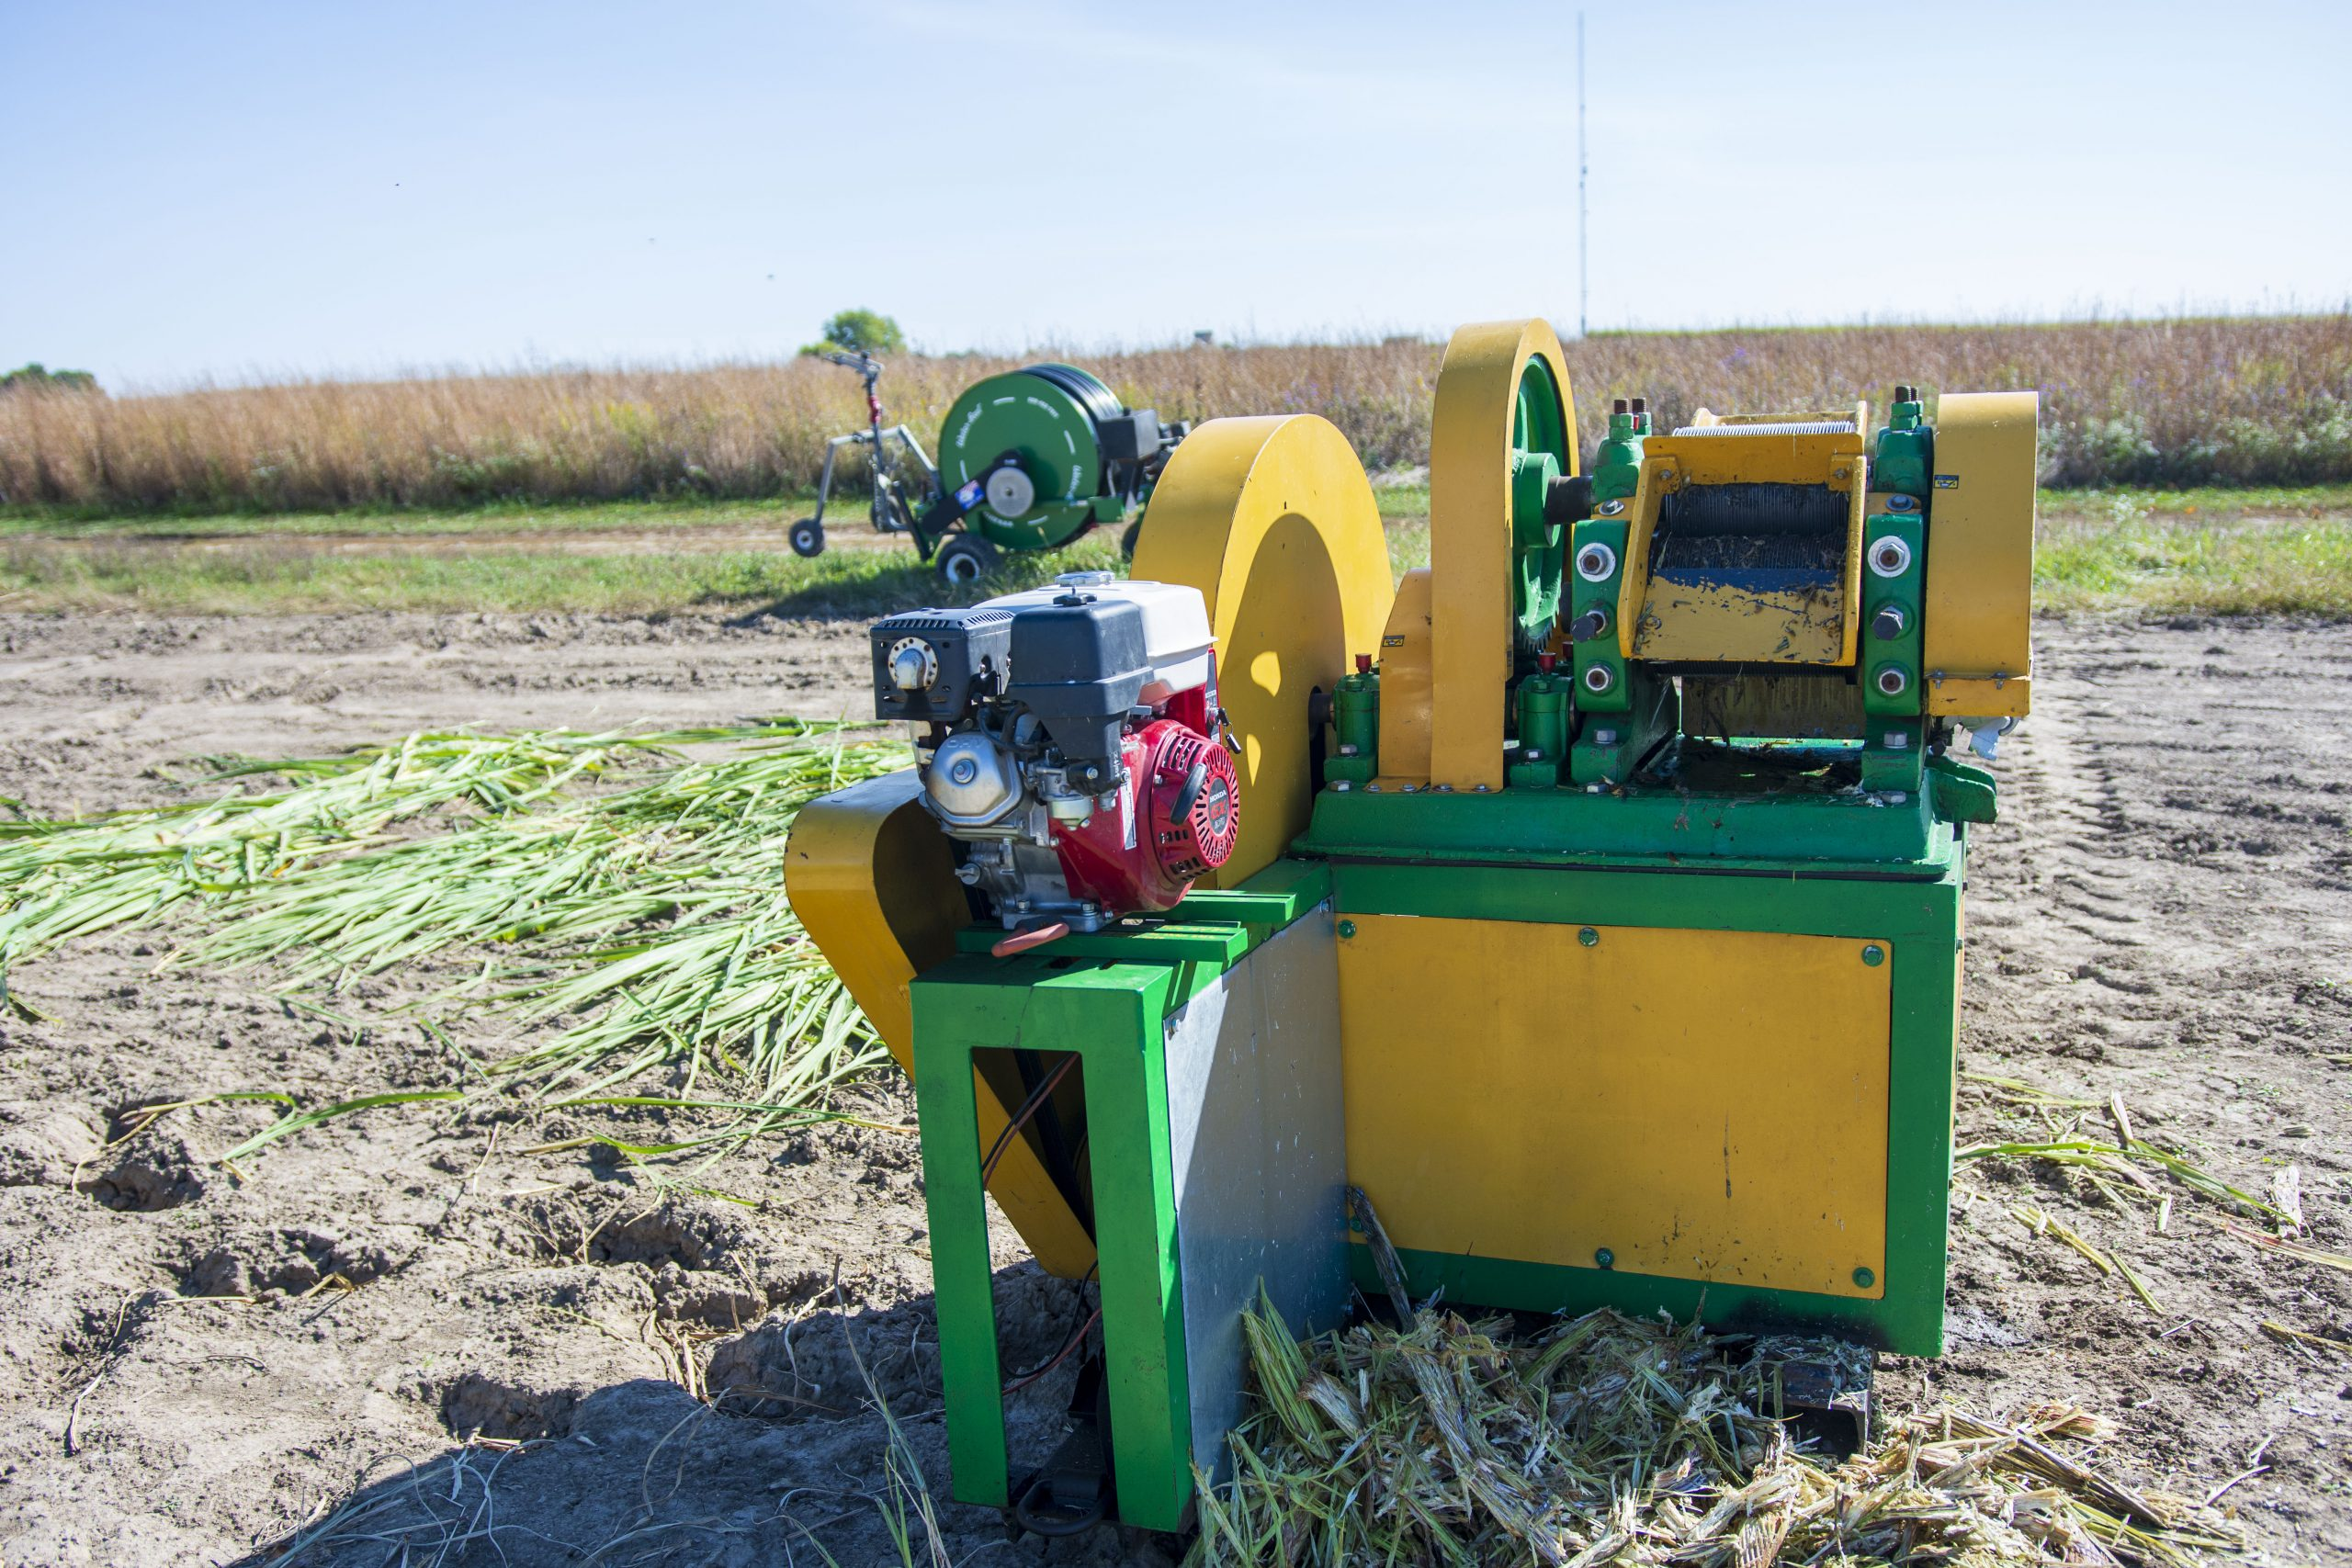 At the Illinois Energy Farm, the juicer is used to immediately process harvested oilcane biomass and recover a valuable oil-sugar mixture.